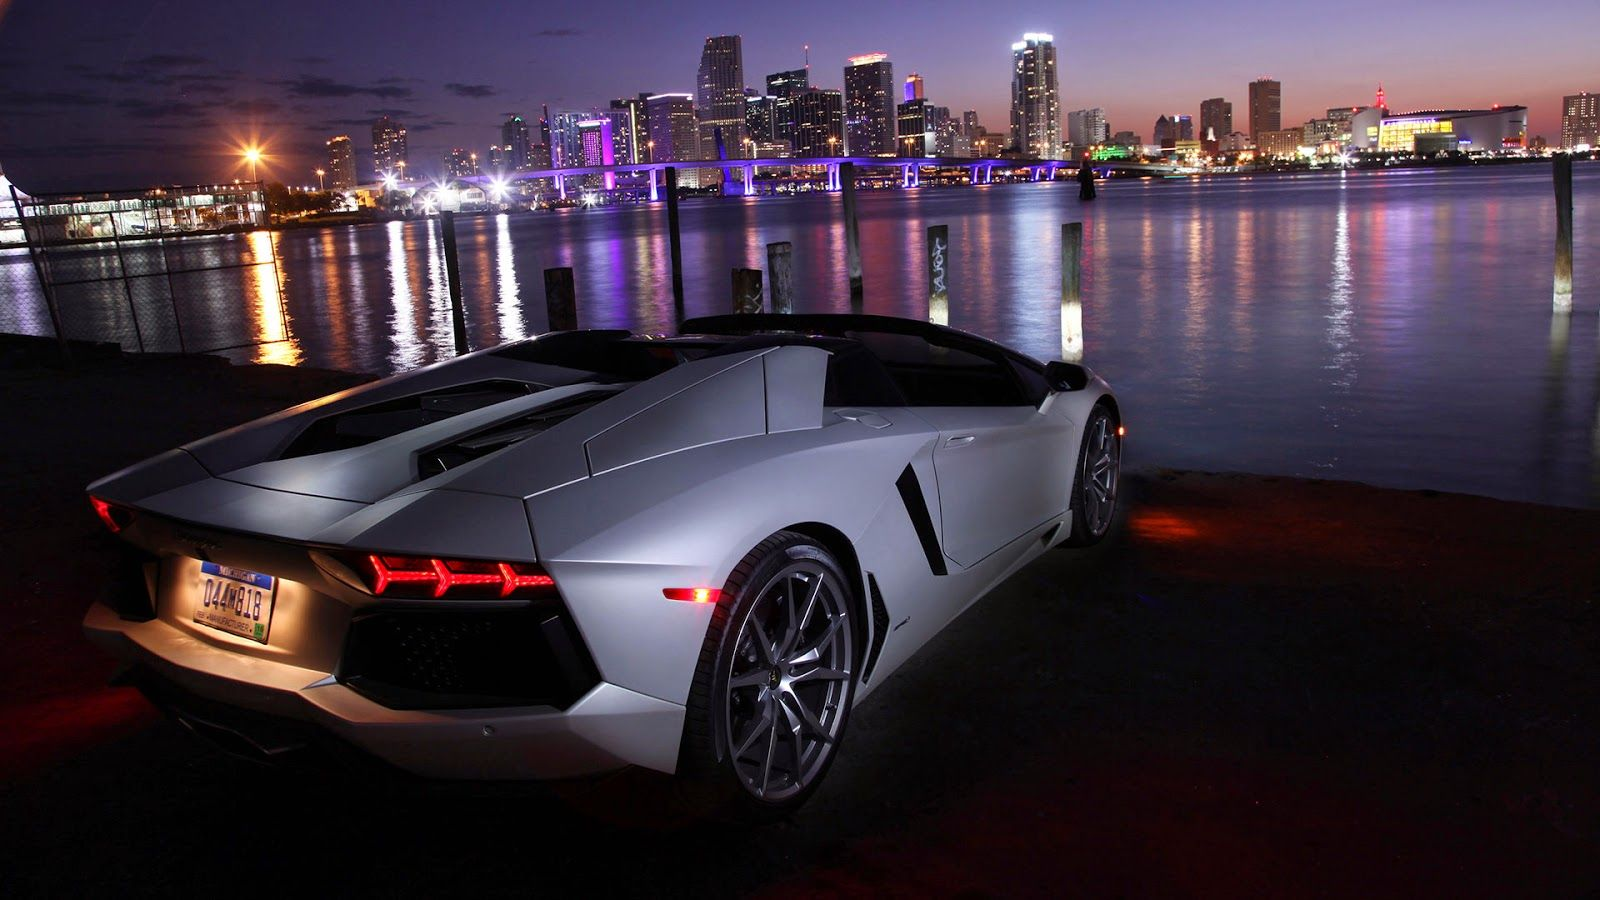 Hd Wallpaper Of Cars For Laptop Cool With Car Wallpapers Cars Wallpaper For Laptop 1600x900 Wallpaper Teahub Io